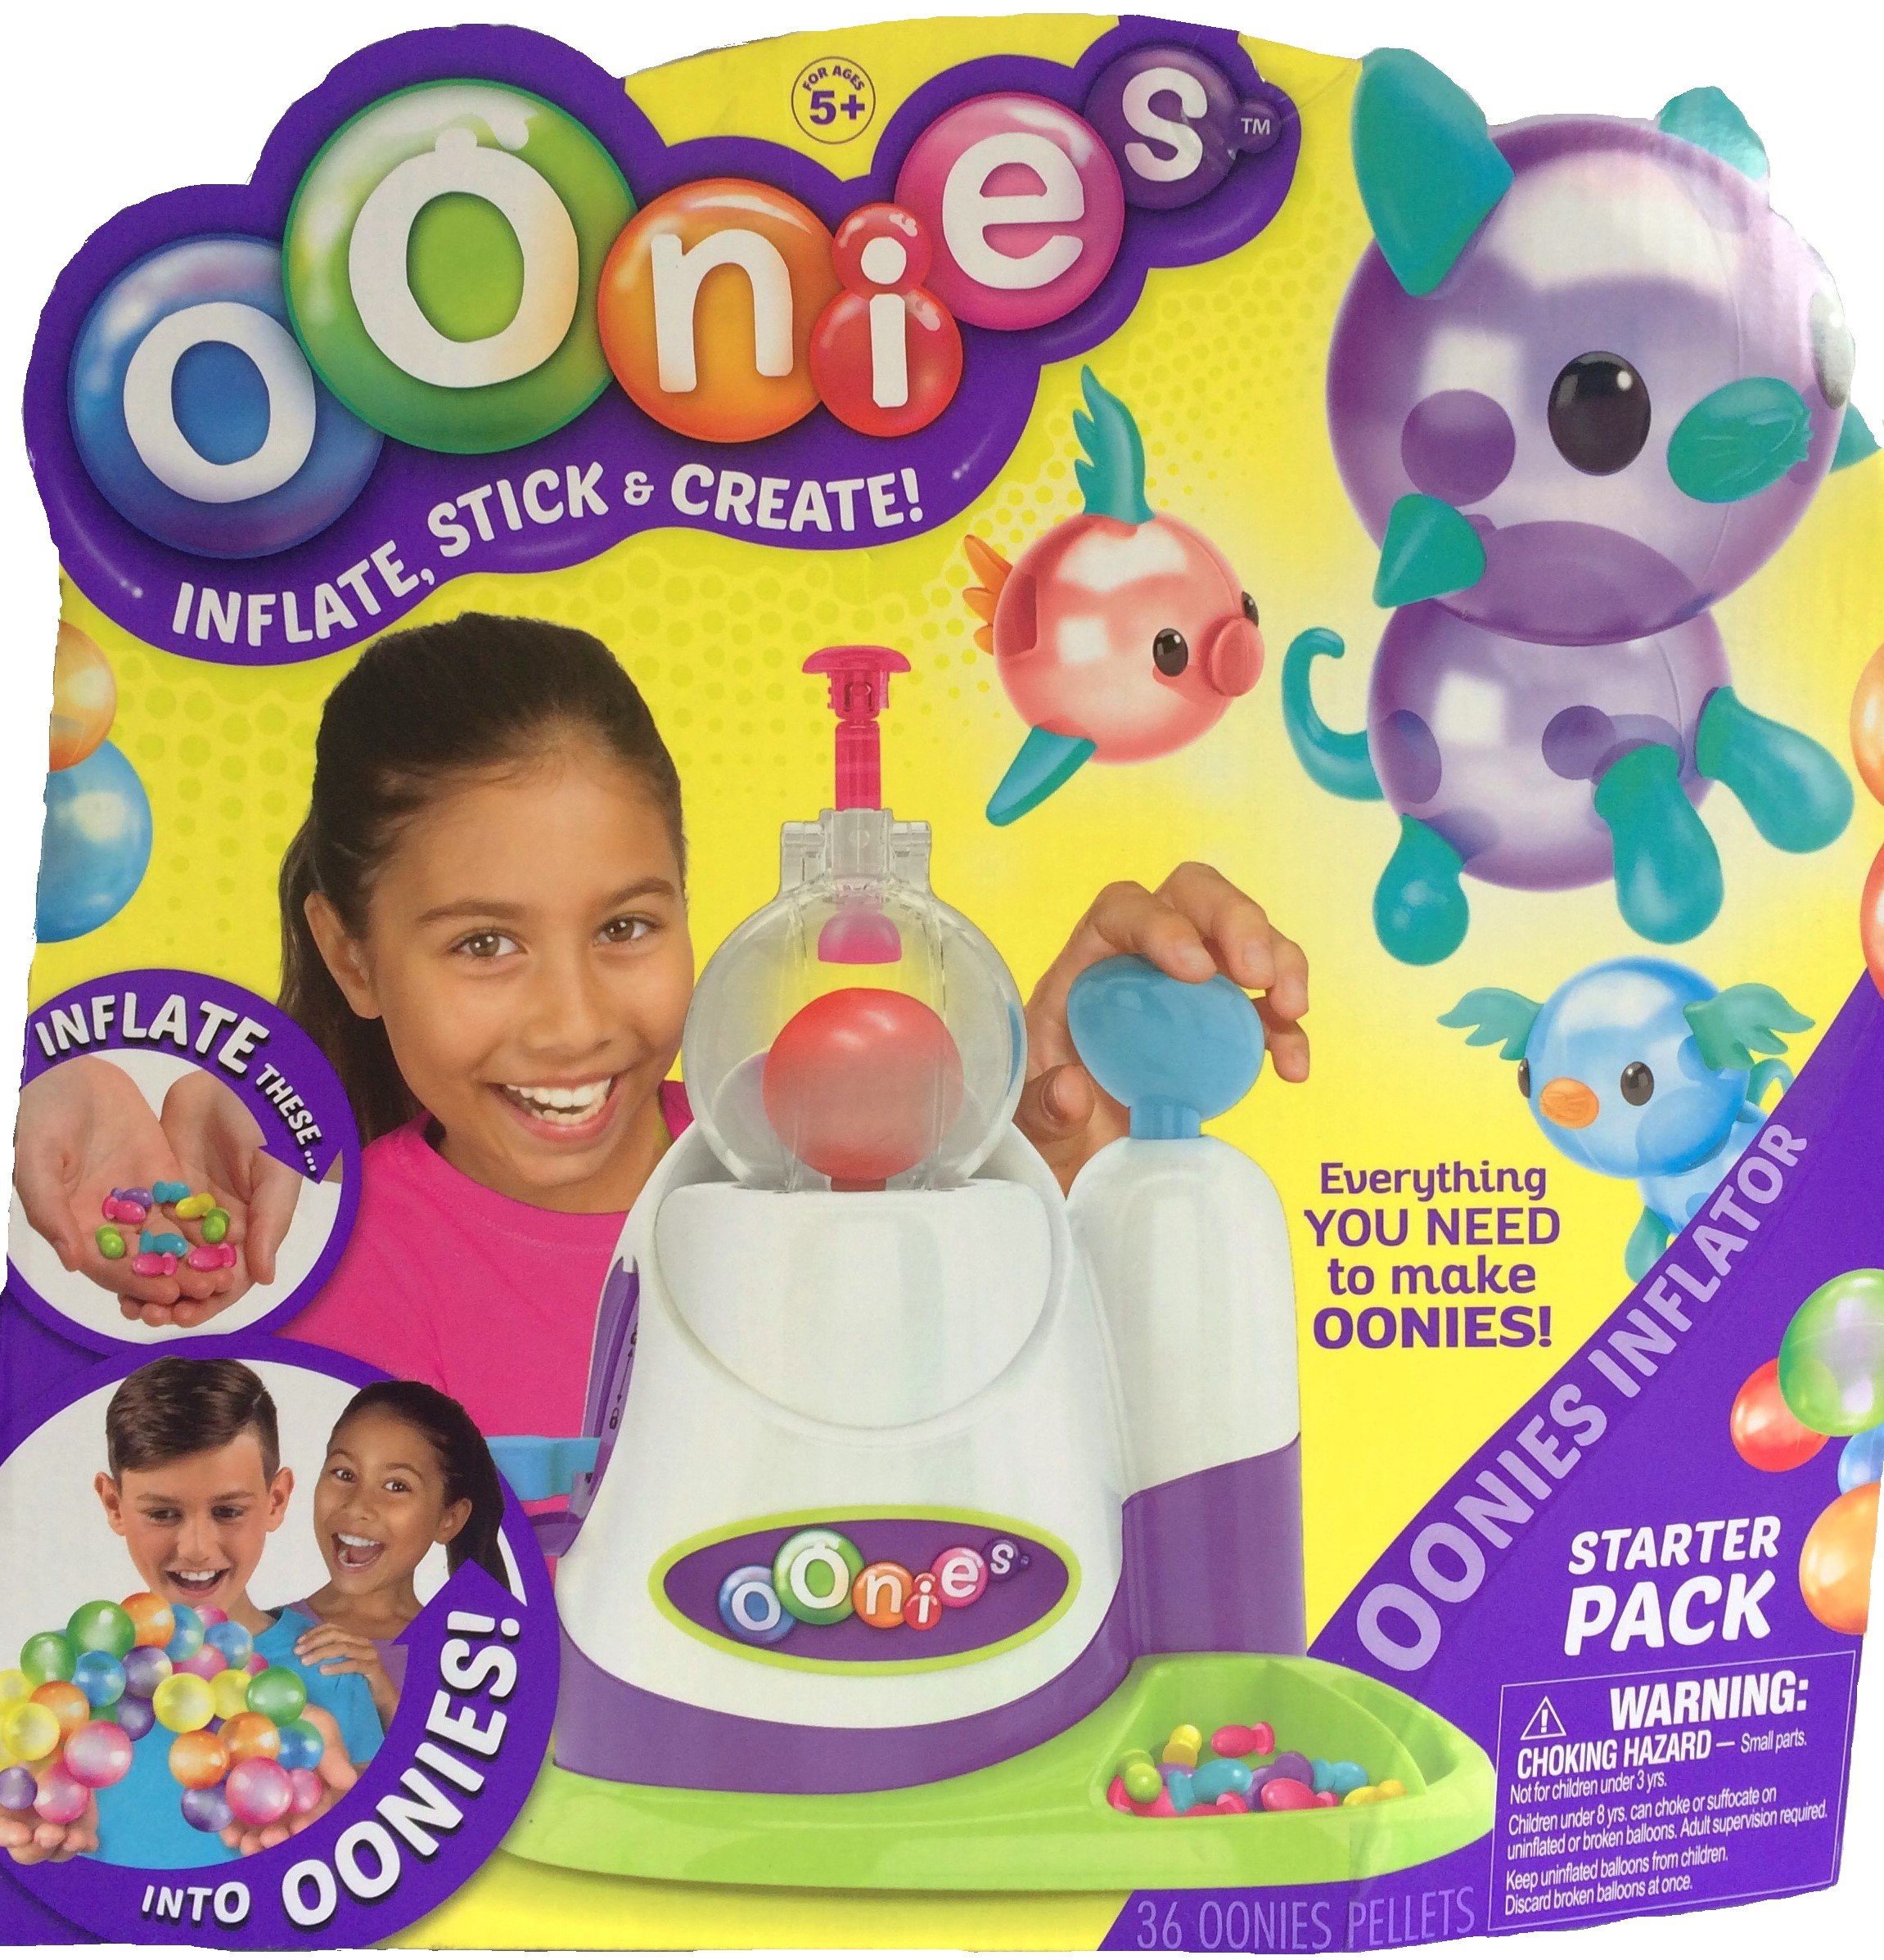 Oonies 5 Piece Toy Bundle Includes Starter Pack with Inflator Tool, Oonies MEGA Refill Multicolor Pack, Oonies Additional Theme Pack, 30 Puffy Sticker Adhesive Eyes & Santa Clings by Mixed (Image #2)